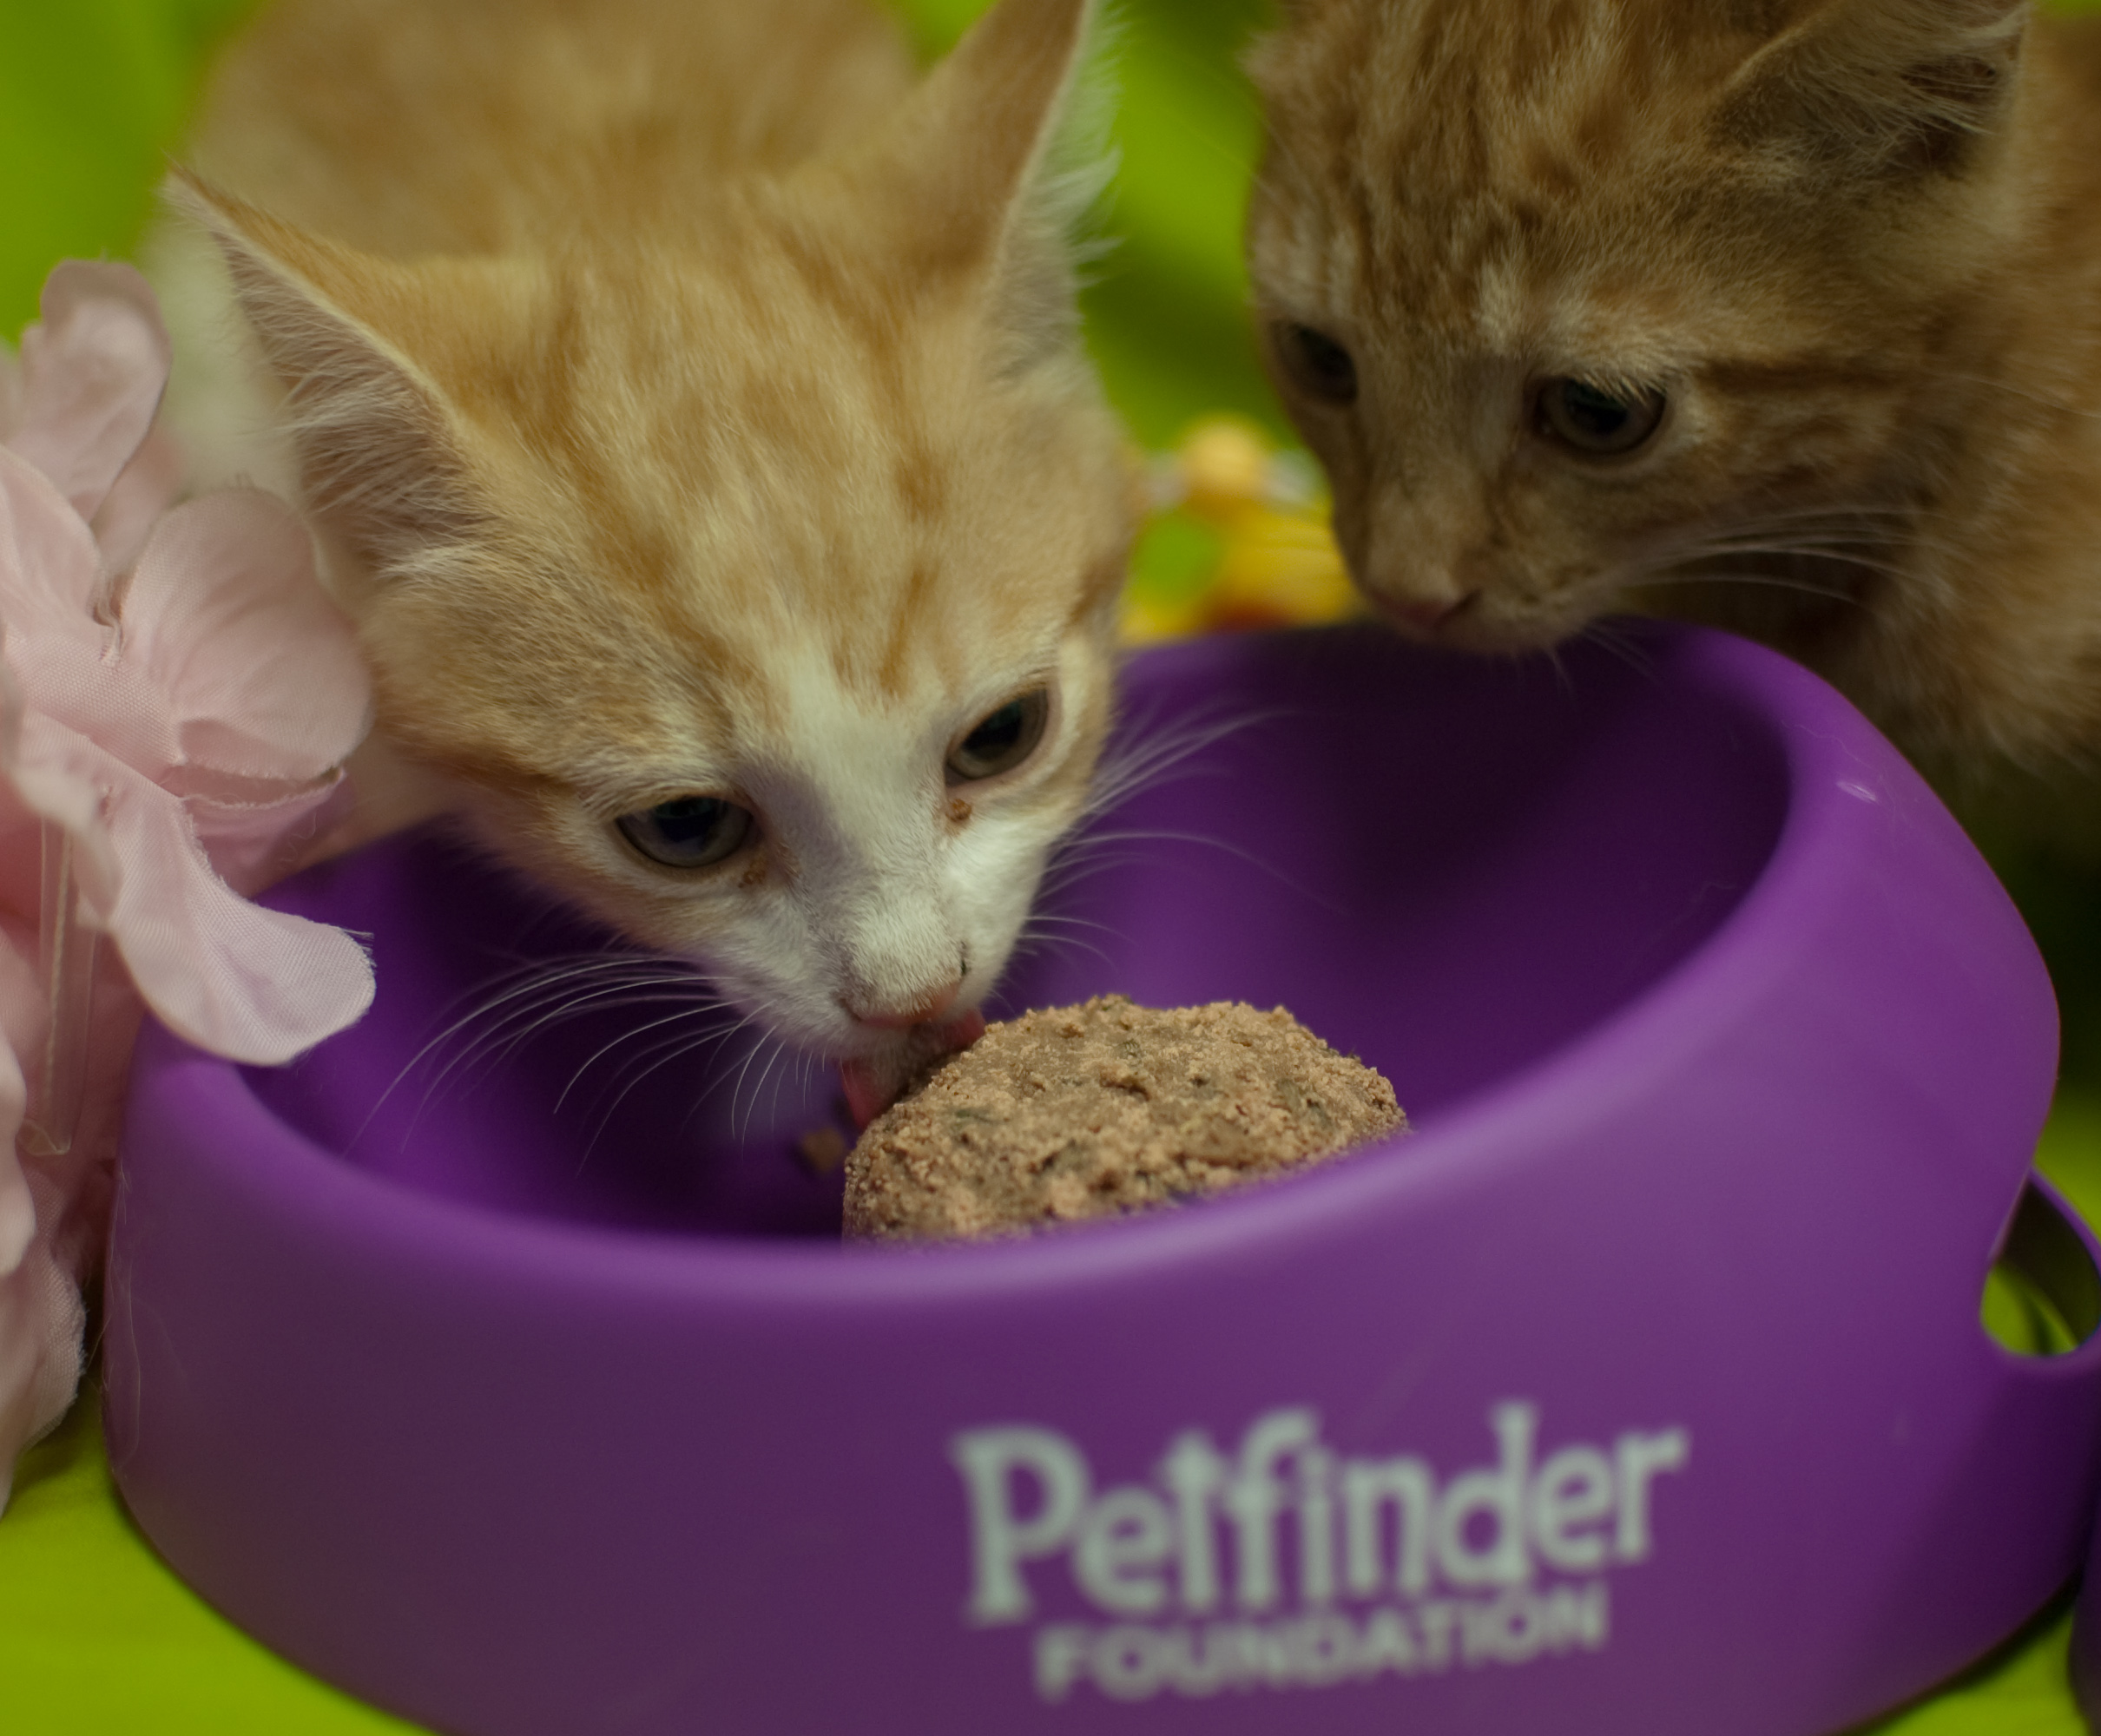 Two brother kittens enjoyed catsicles at PACC.